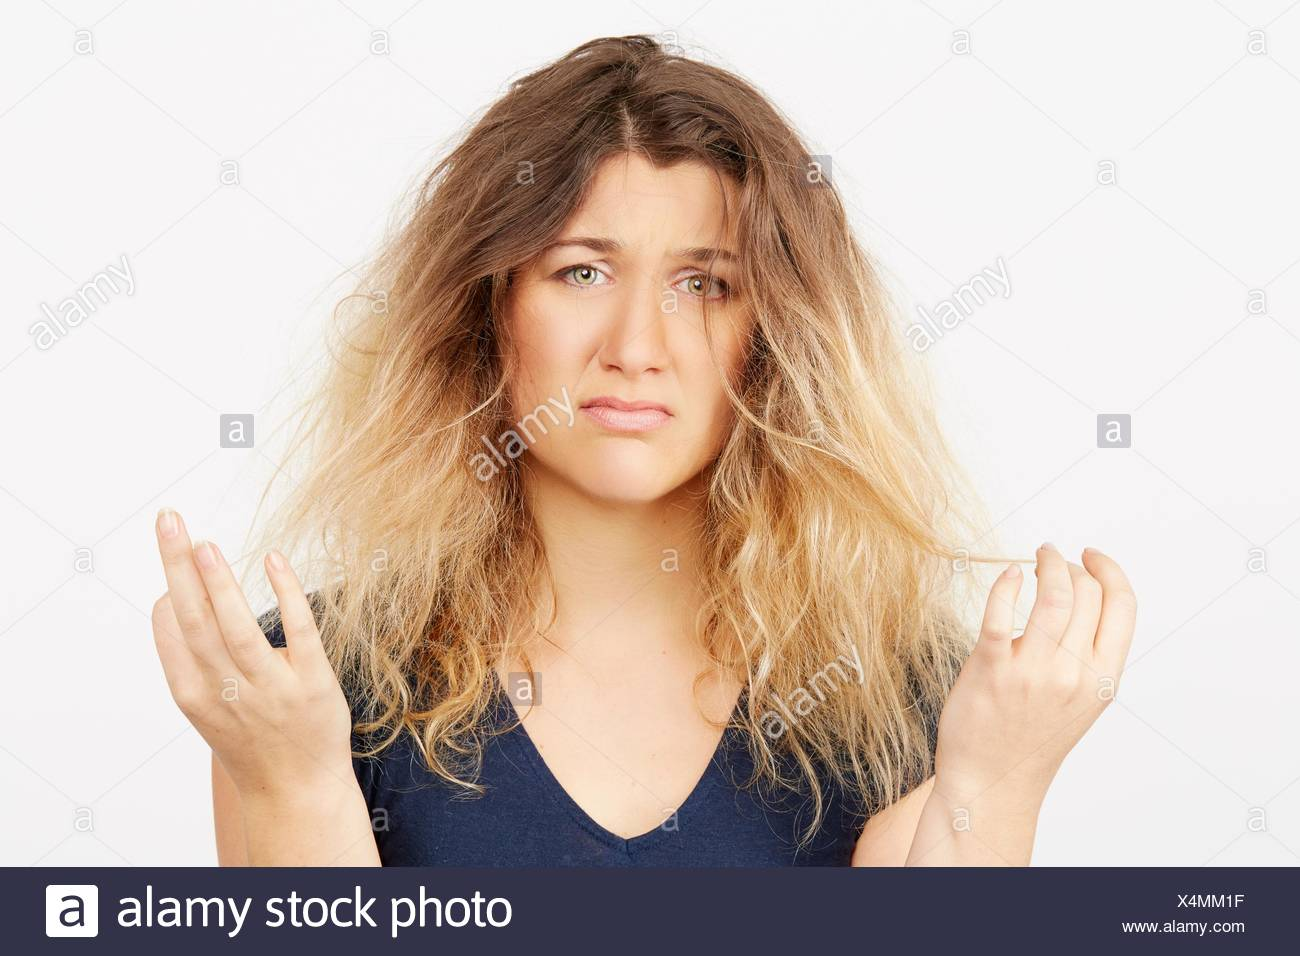 Young woman with damaged dyed hair - Stock Image